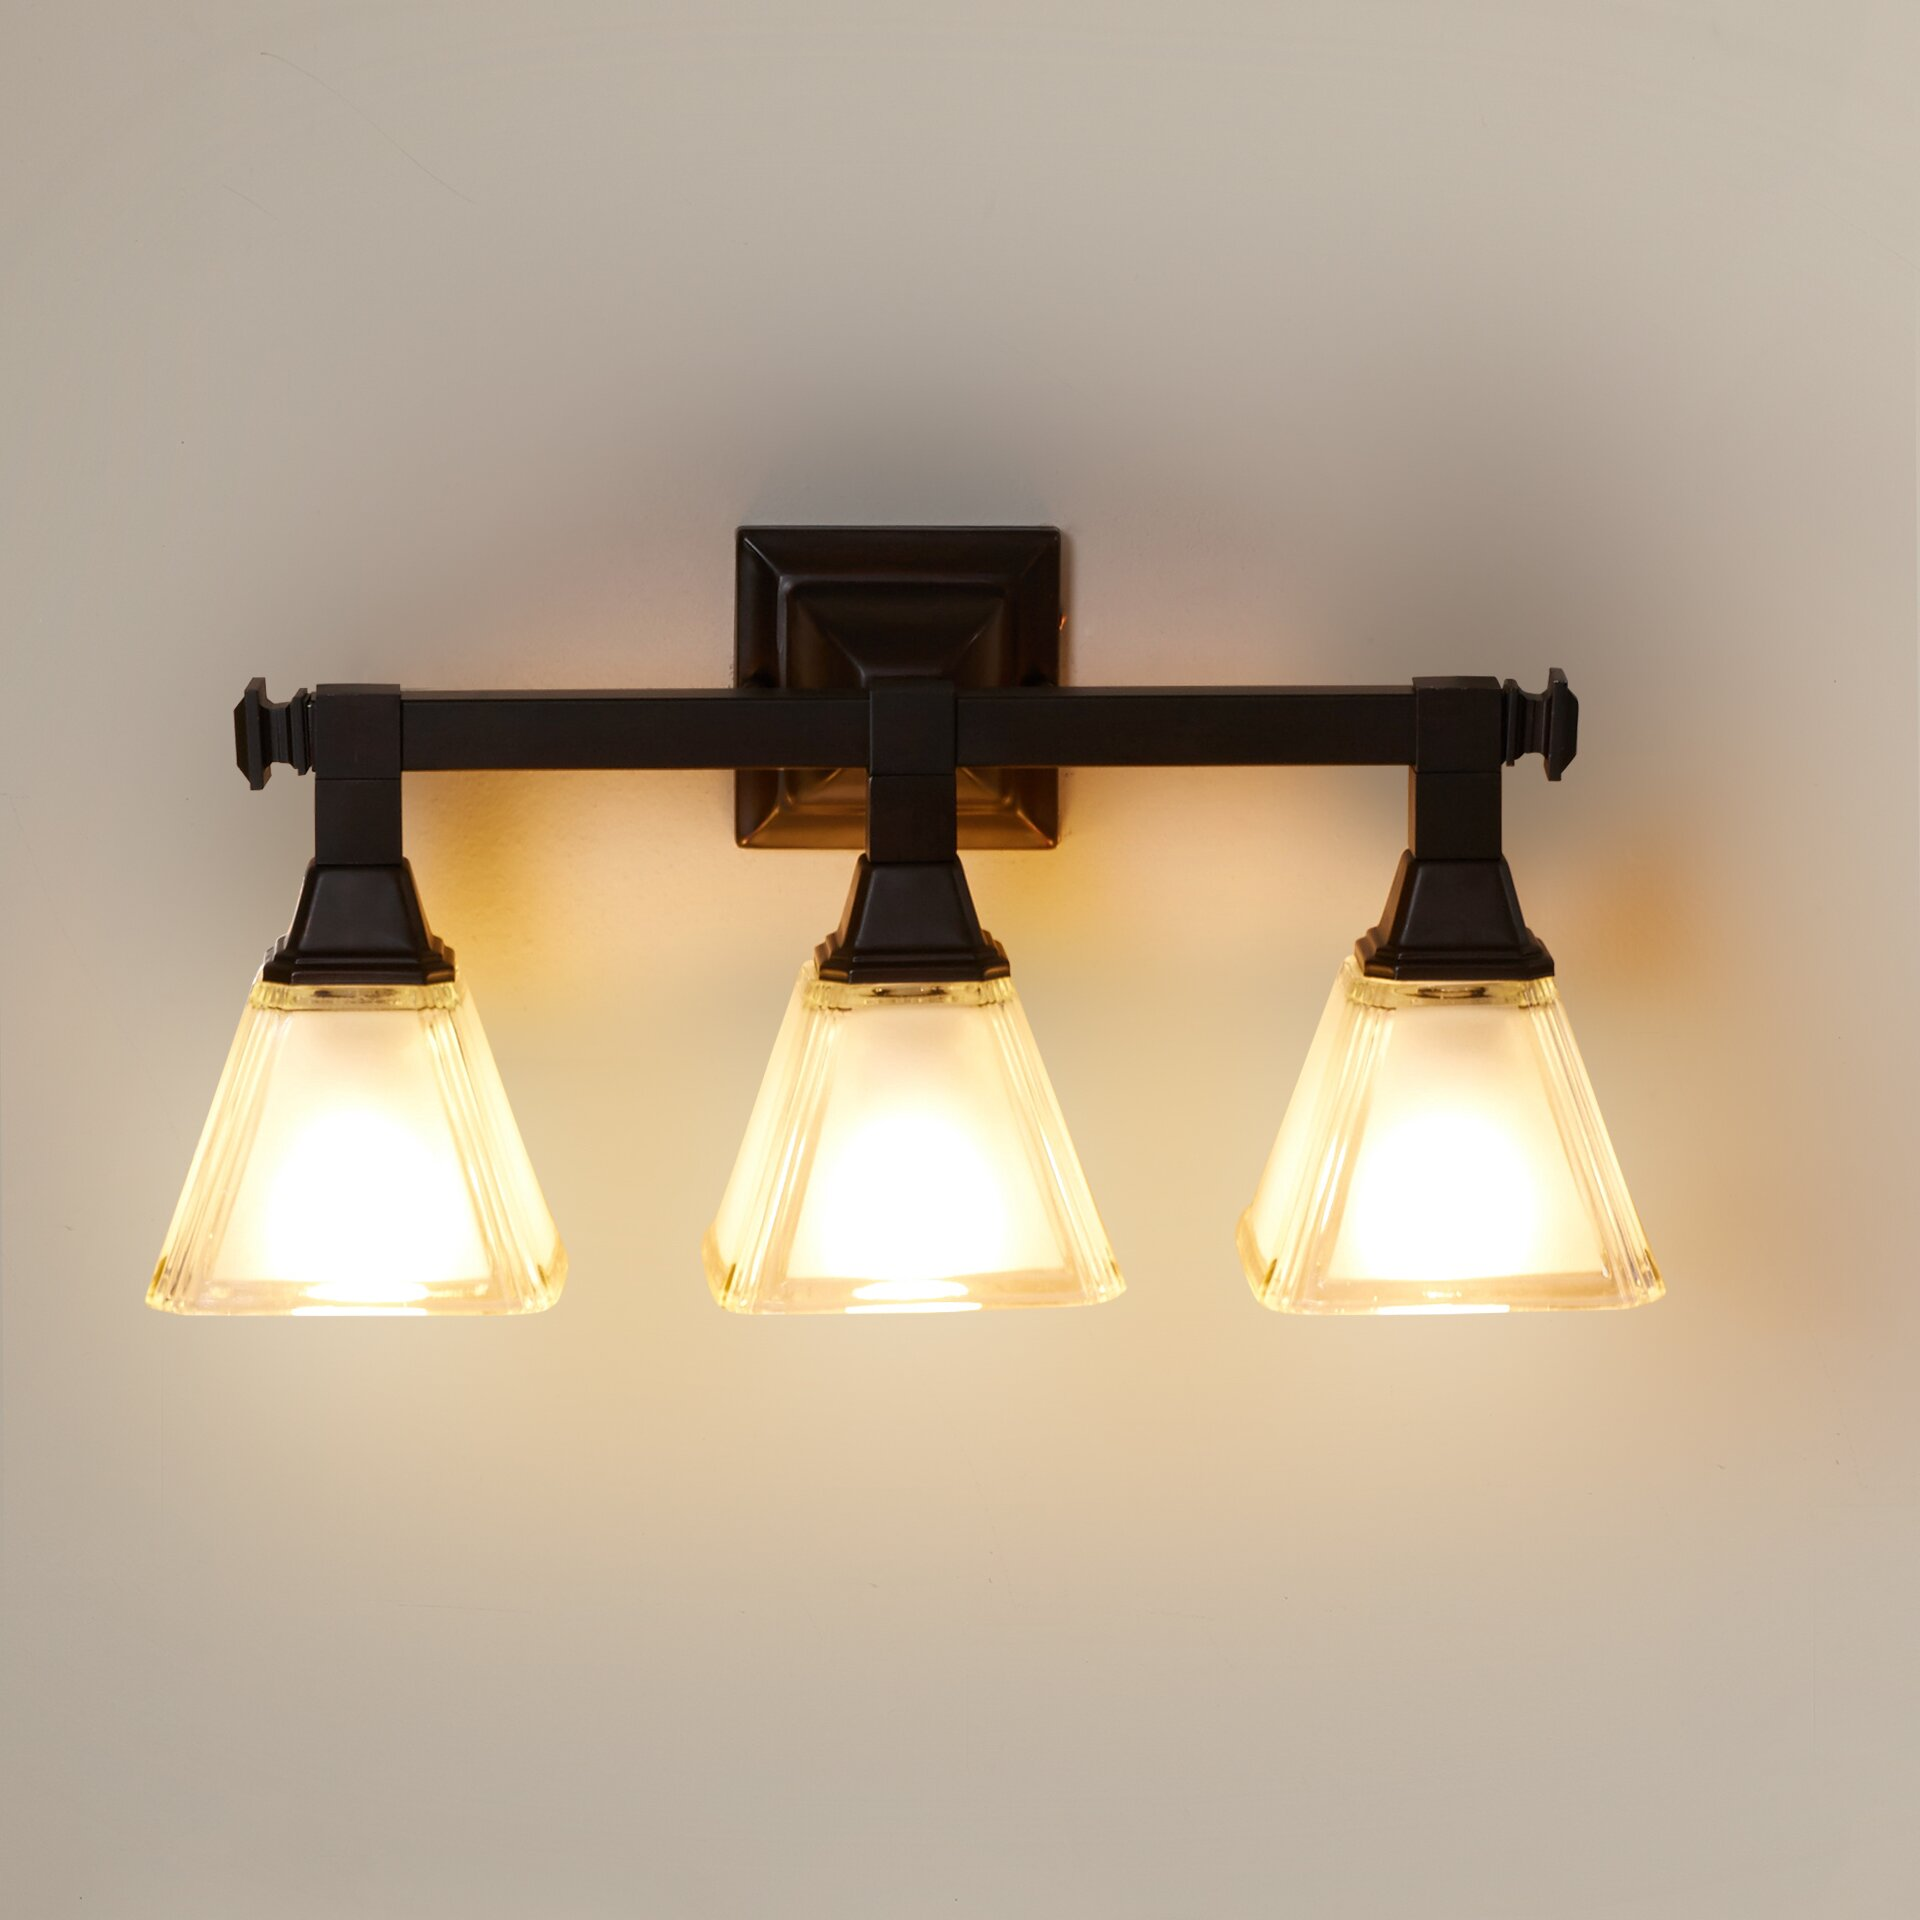 lights for bathroom vanity charlton home gahagan 3 light vanity light amp reviews wayfair 19293